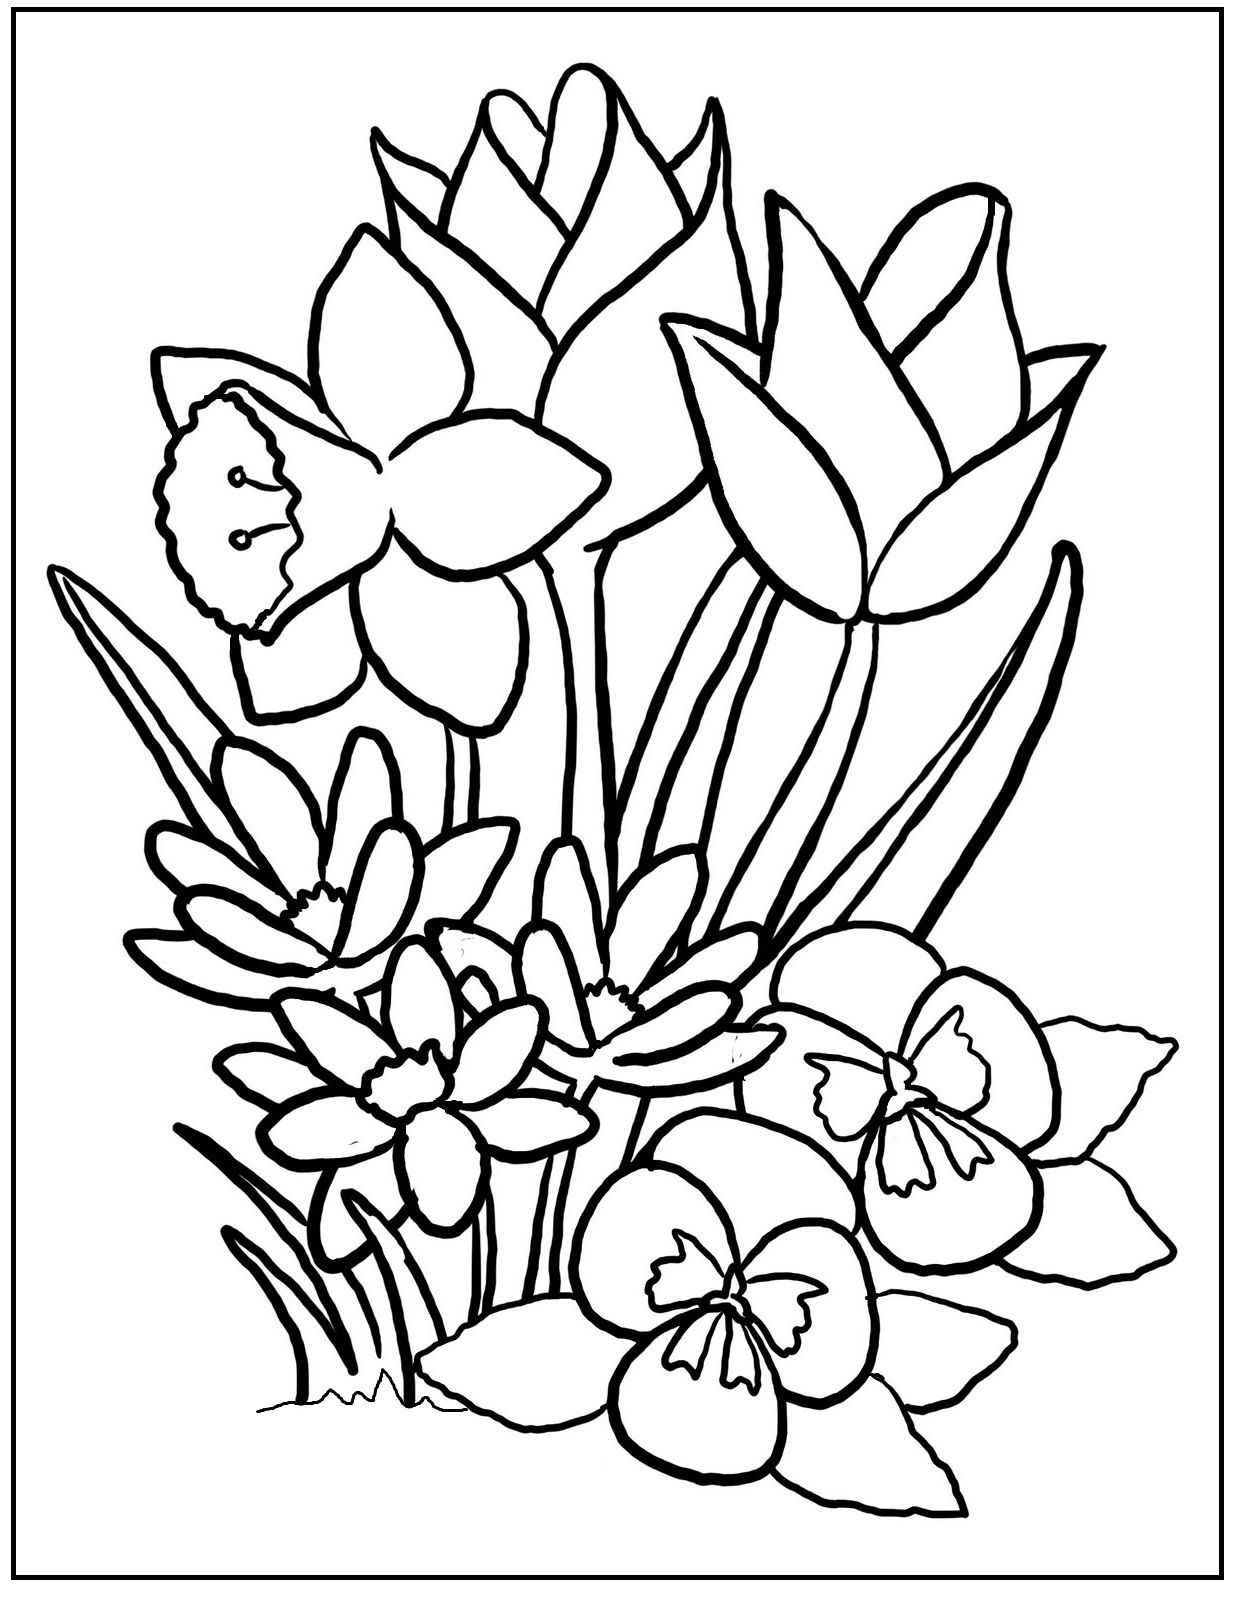 colorful flowers on spring day coloring picture for kids spring